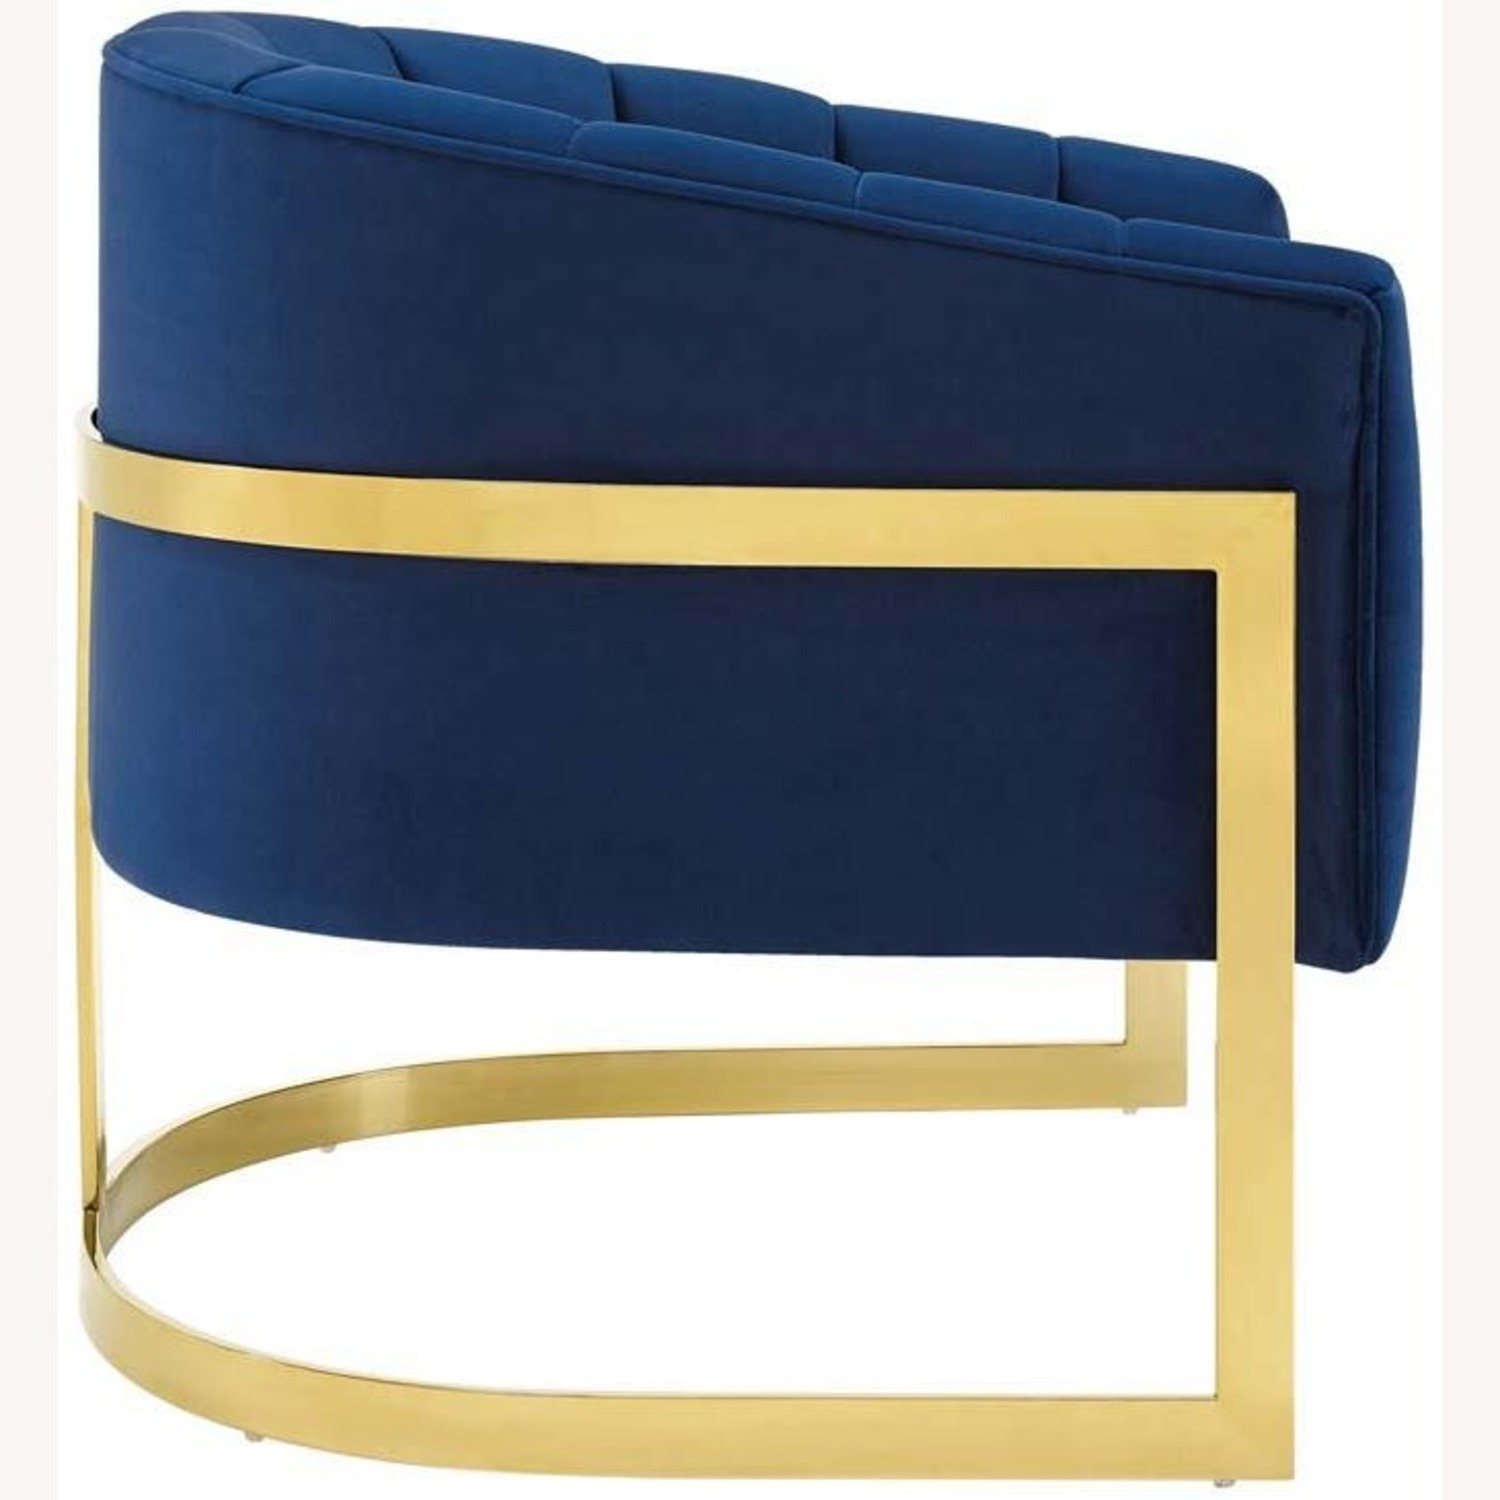 Accent Chair In Navy Velvet W/ Channel Tufting - image-2